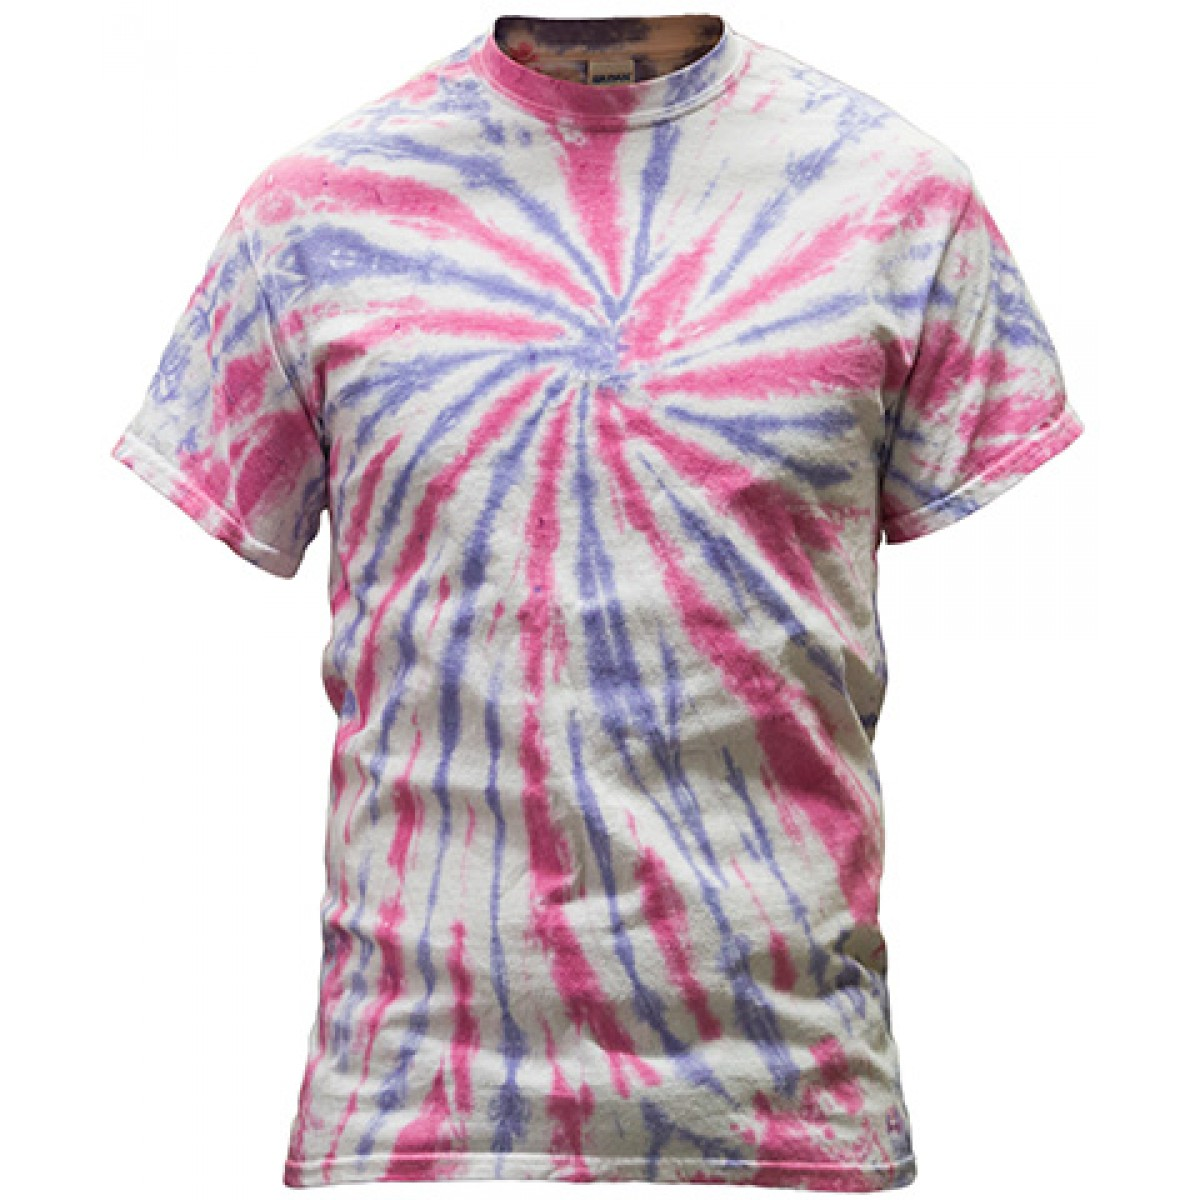 Multi-Color Tie-Dye Tee -Pink/Purple-XL